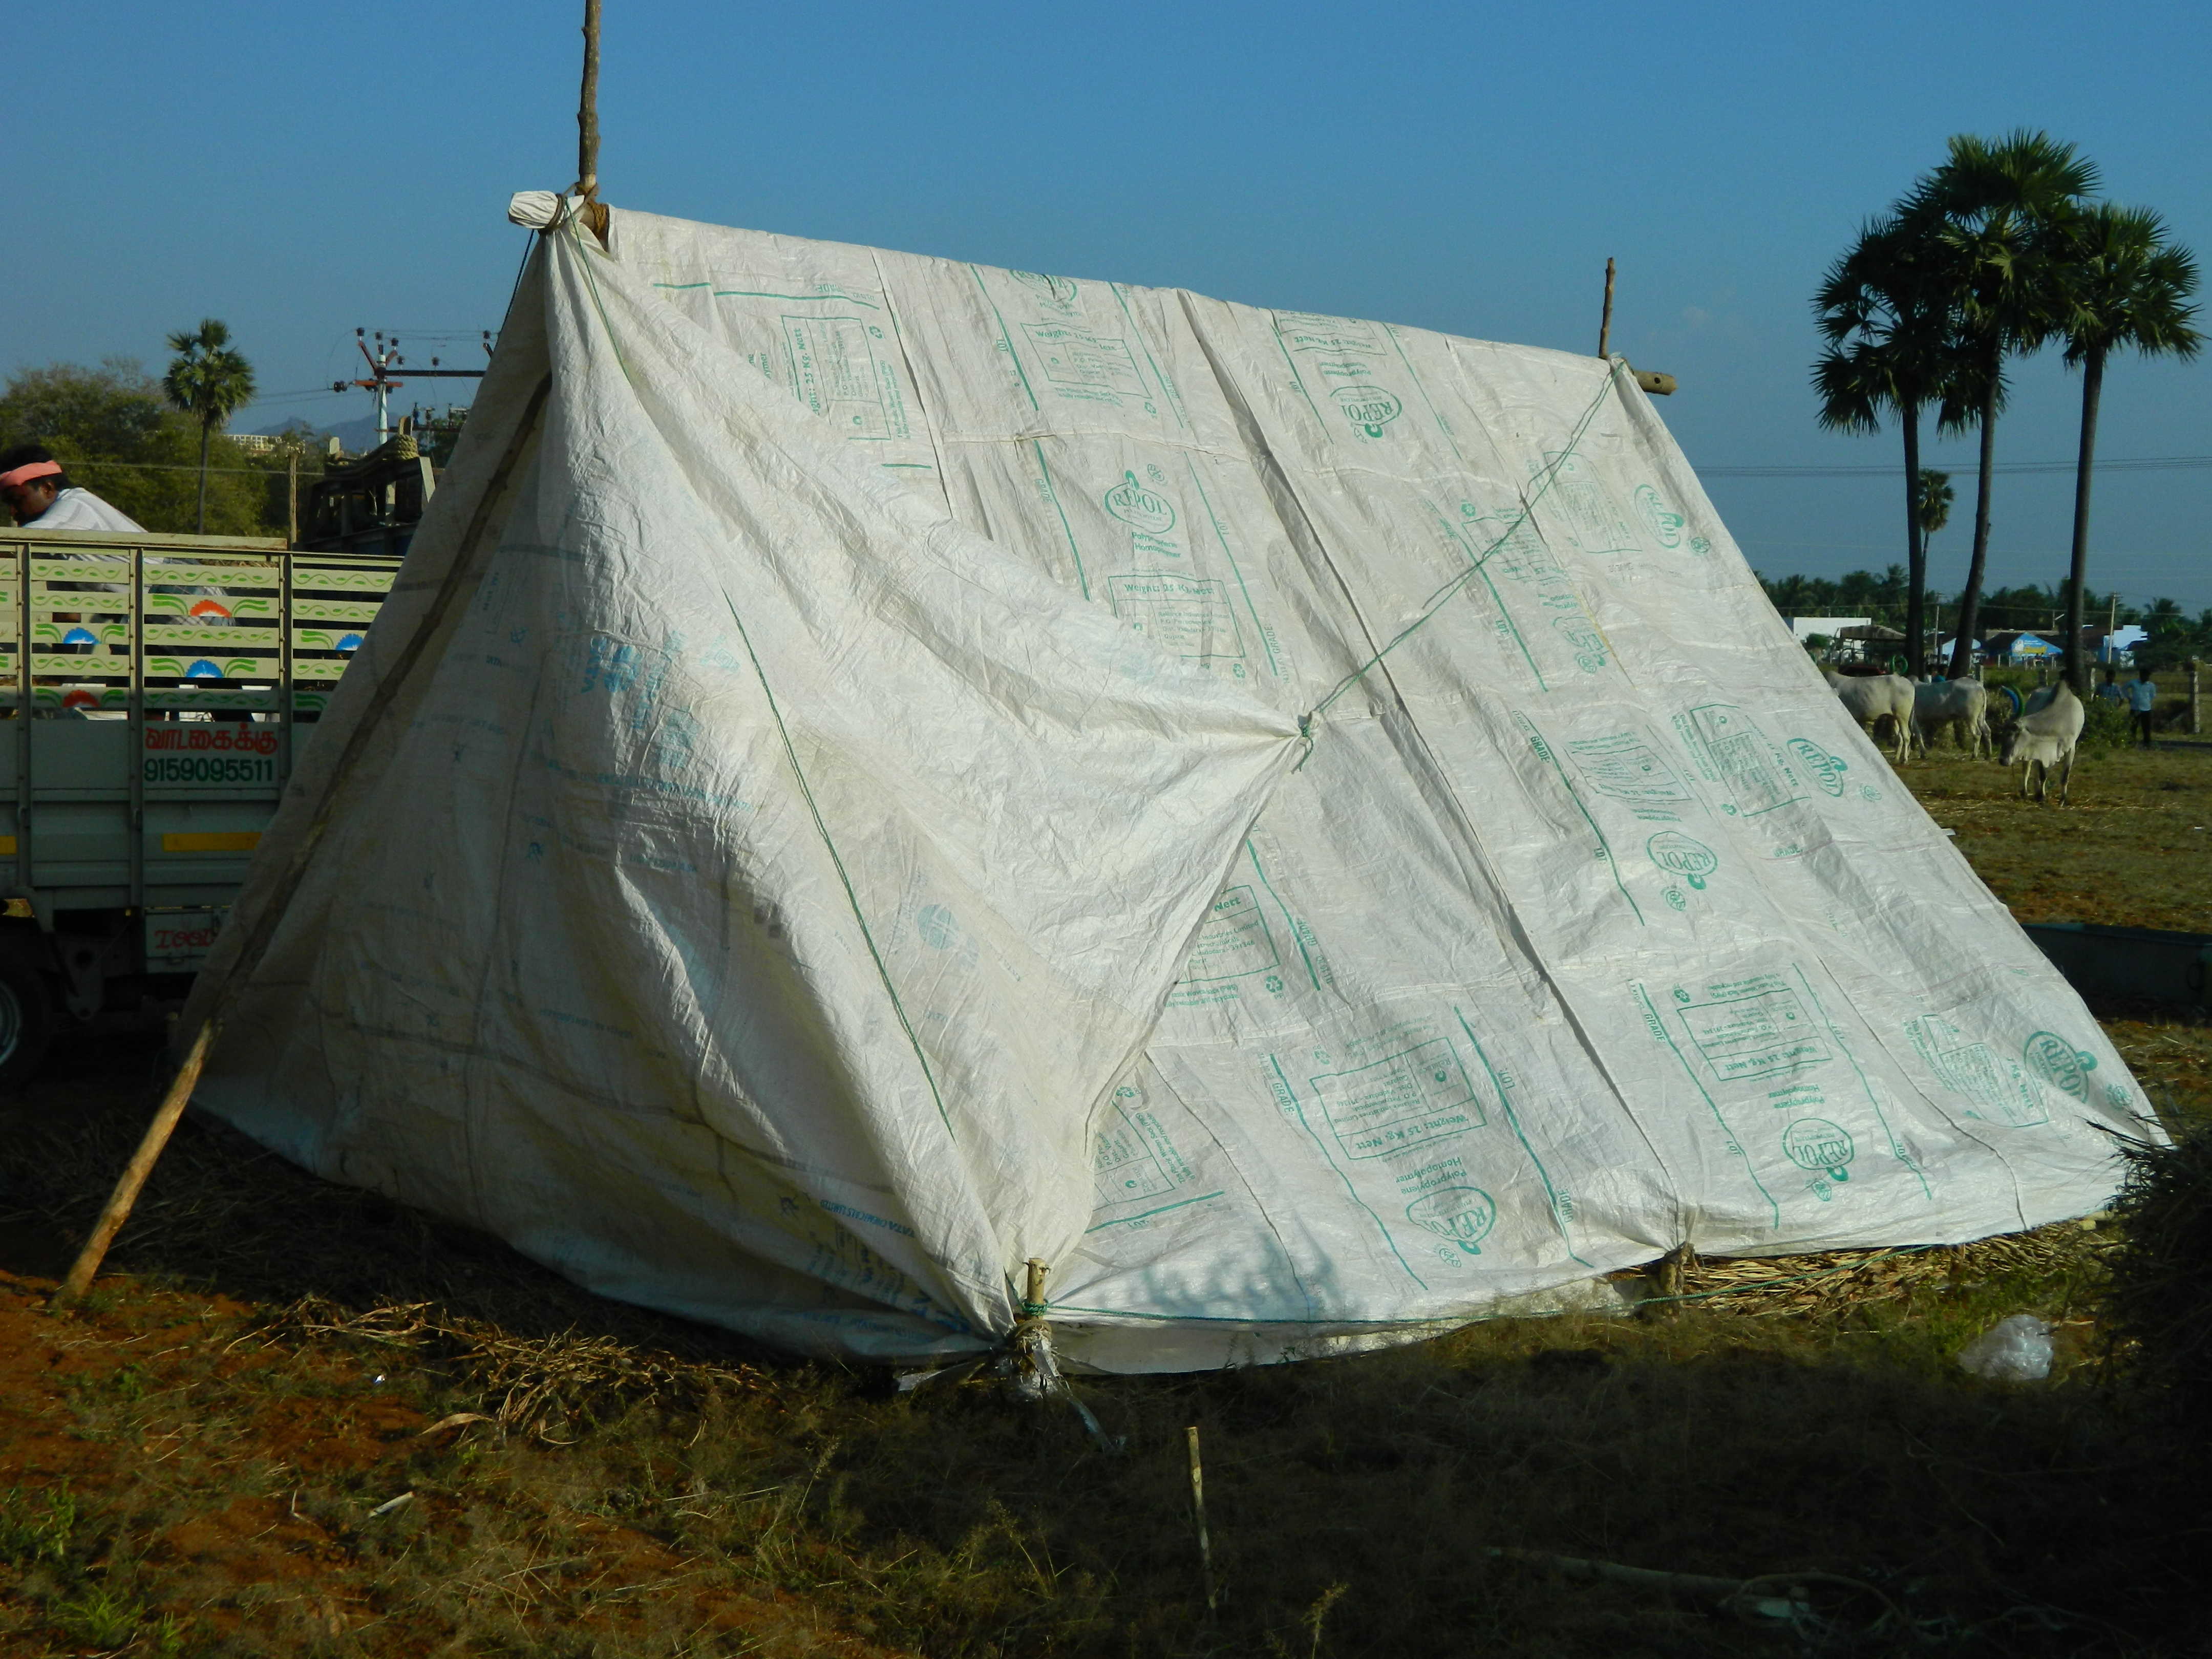 FileA close-up of Tent.JPG & File:A close-up of Tent.JPG - Wikimedia Commons